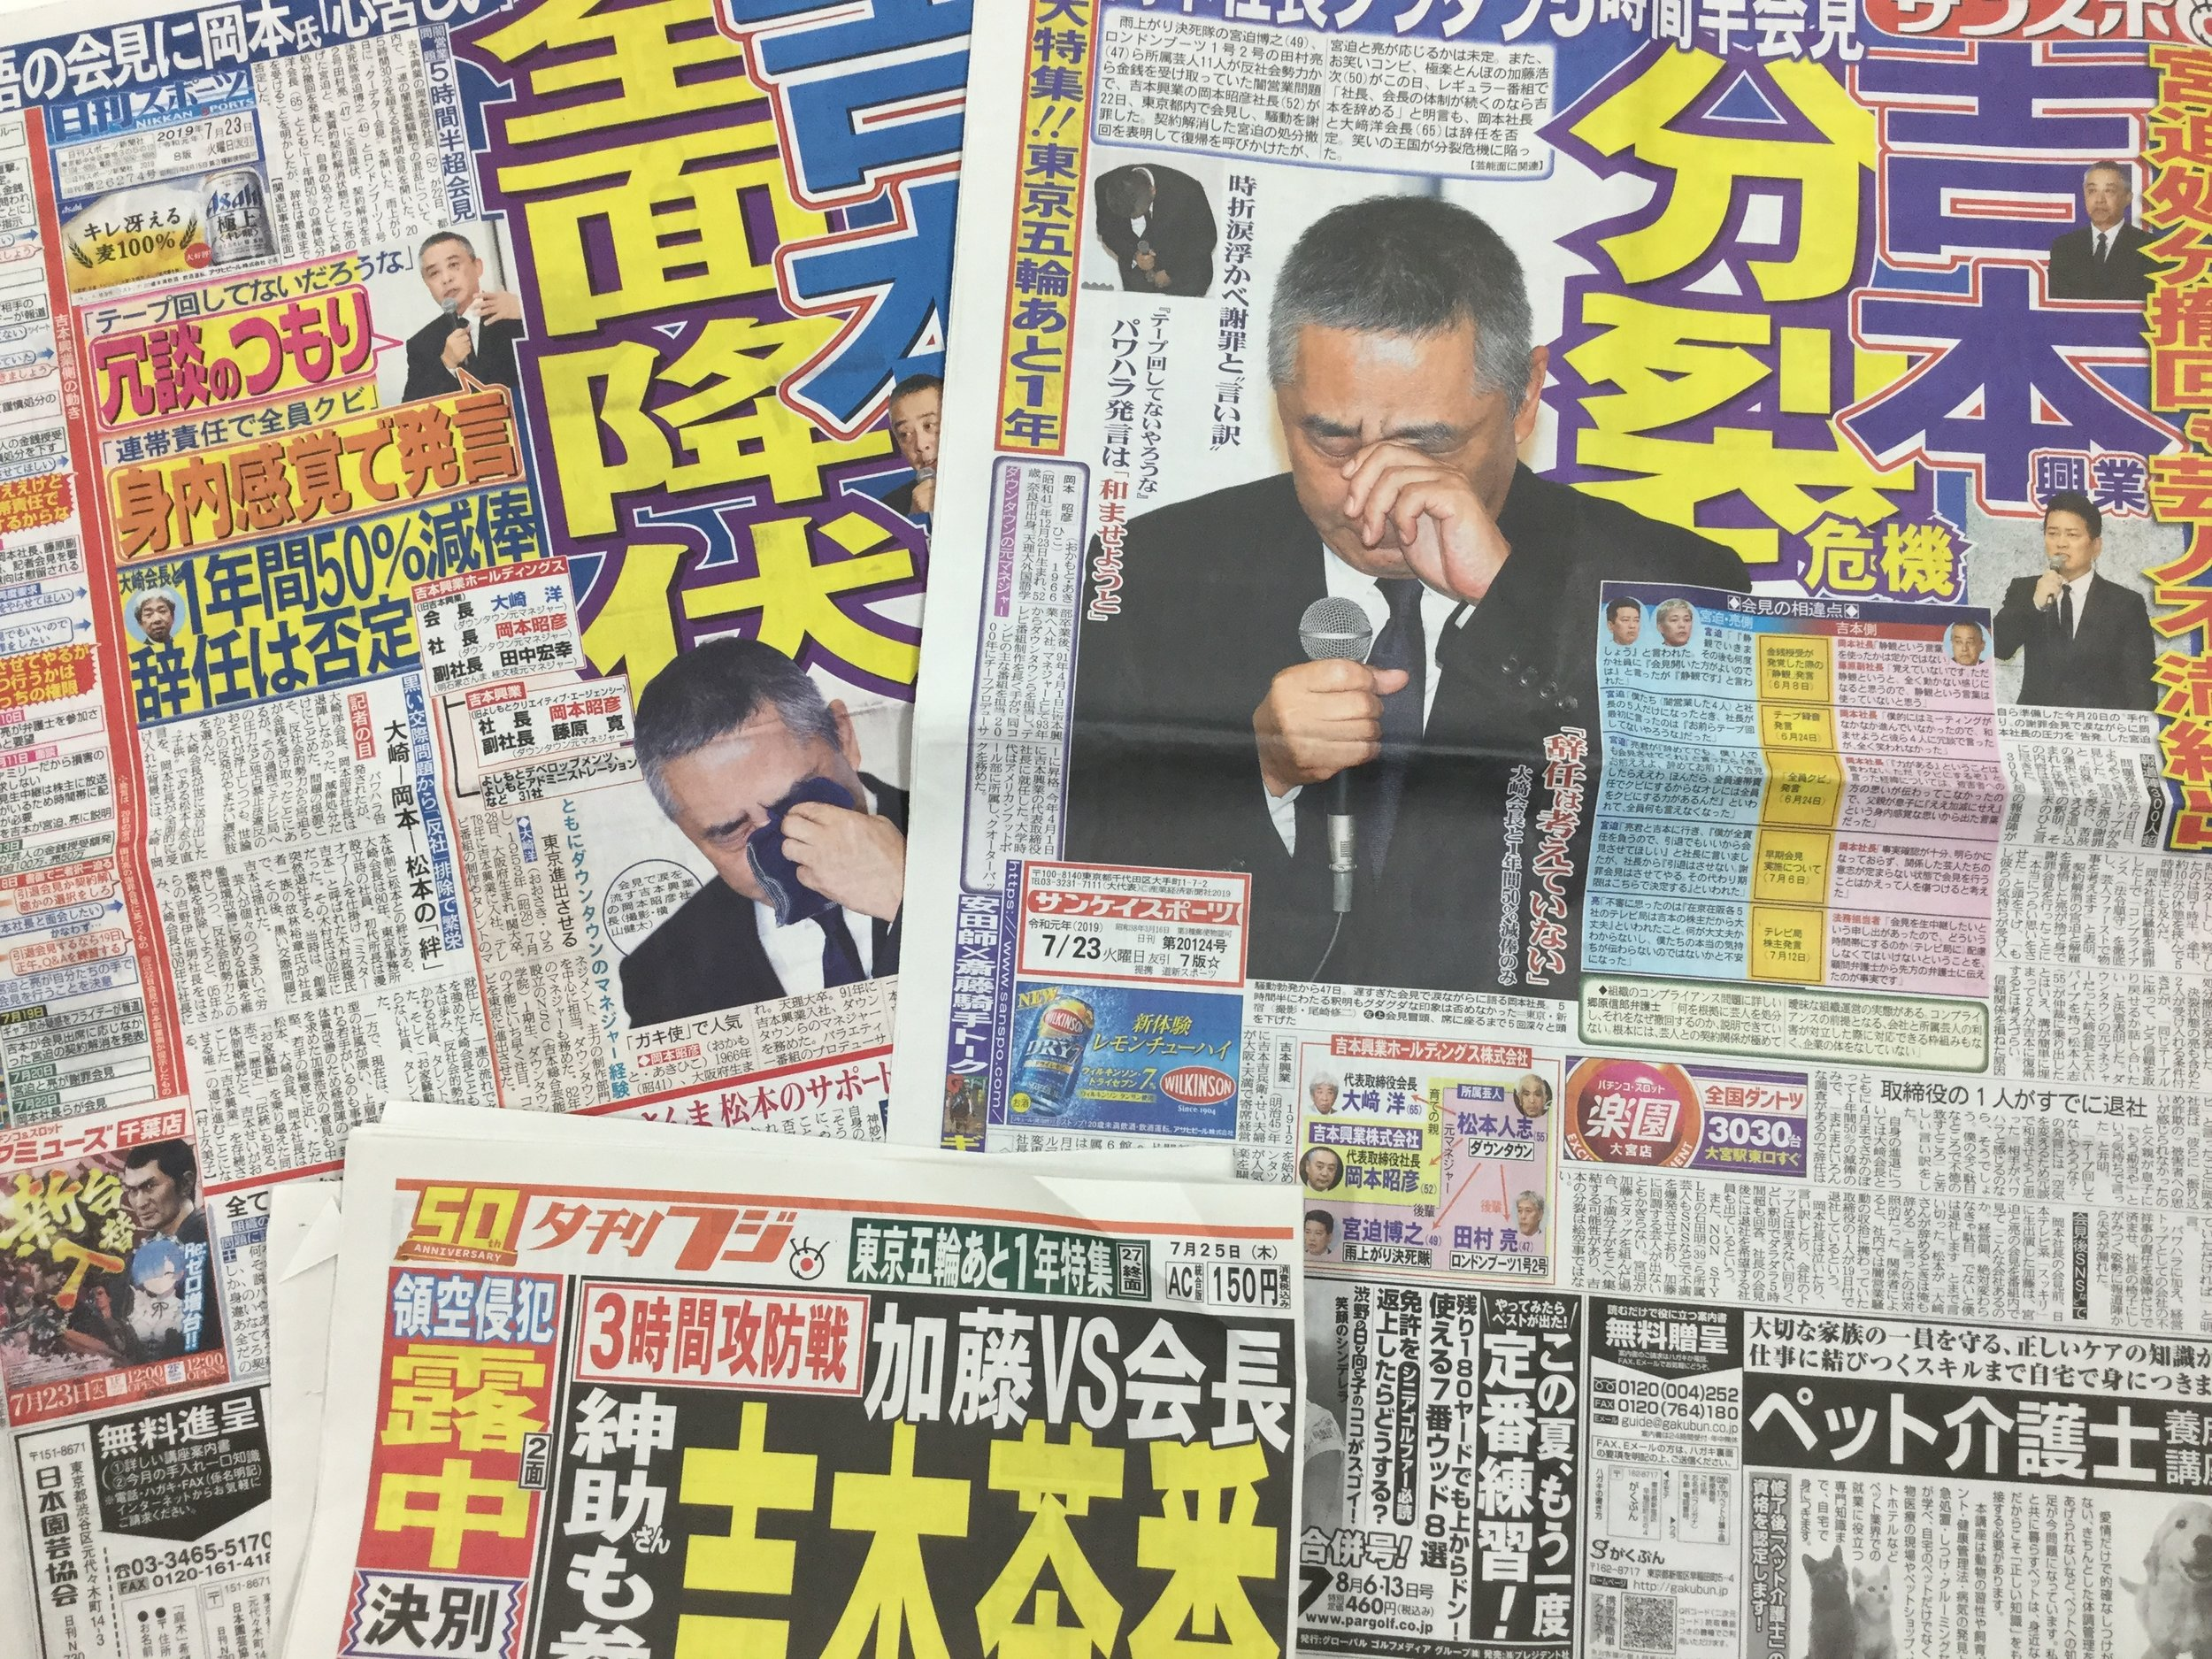 """Yoshimoto has dominated the news in the last week. After the press conference: newspapers with headlines of """"Full Surrender"""", """"Breakup Crisis"""", and """"Yoshimoto Farce""""."""